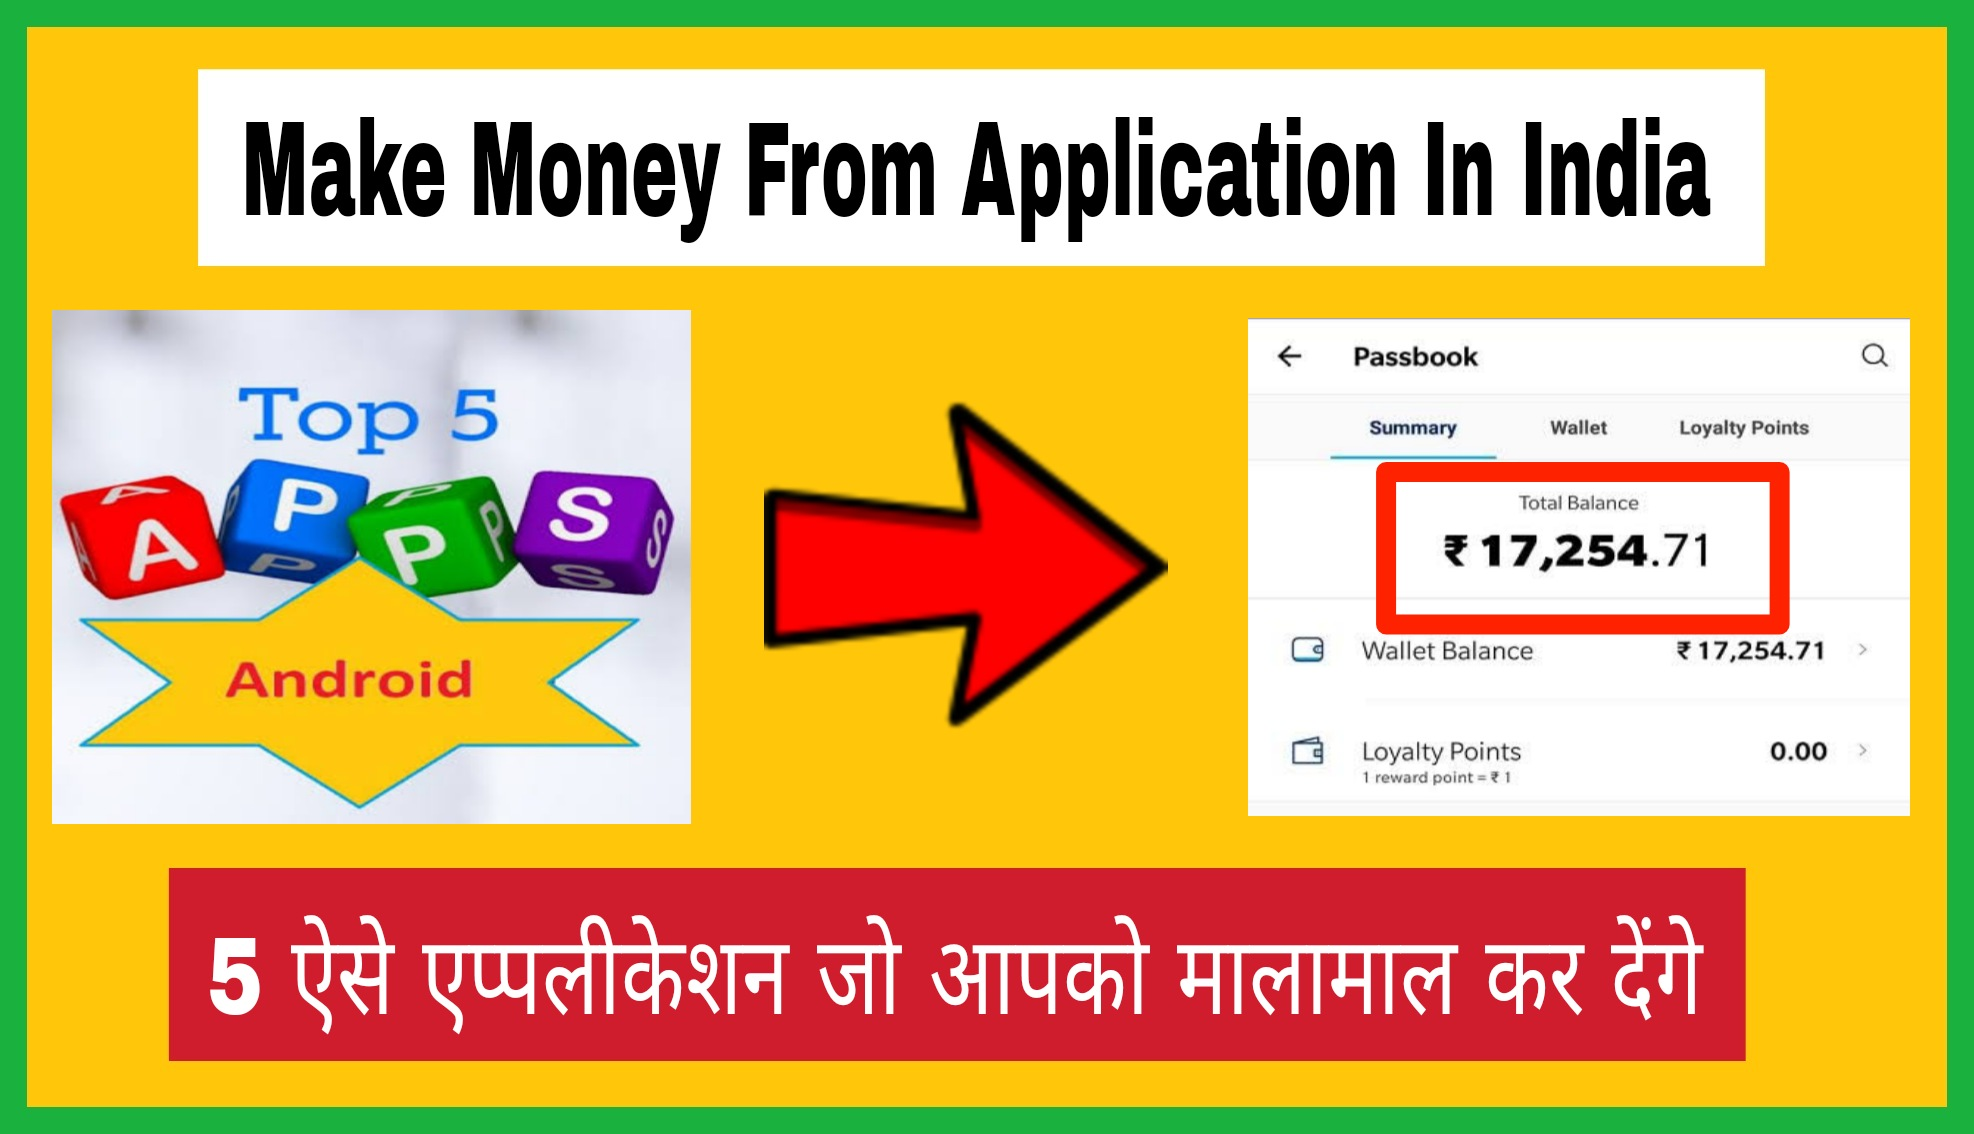 Make Money From Application In India